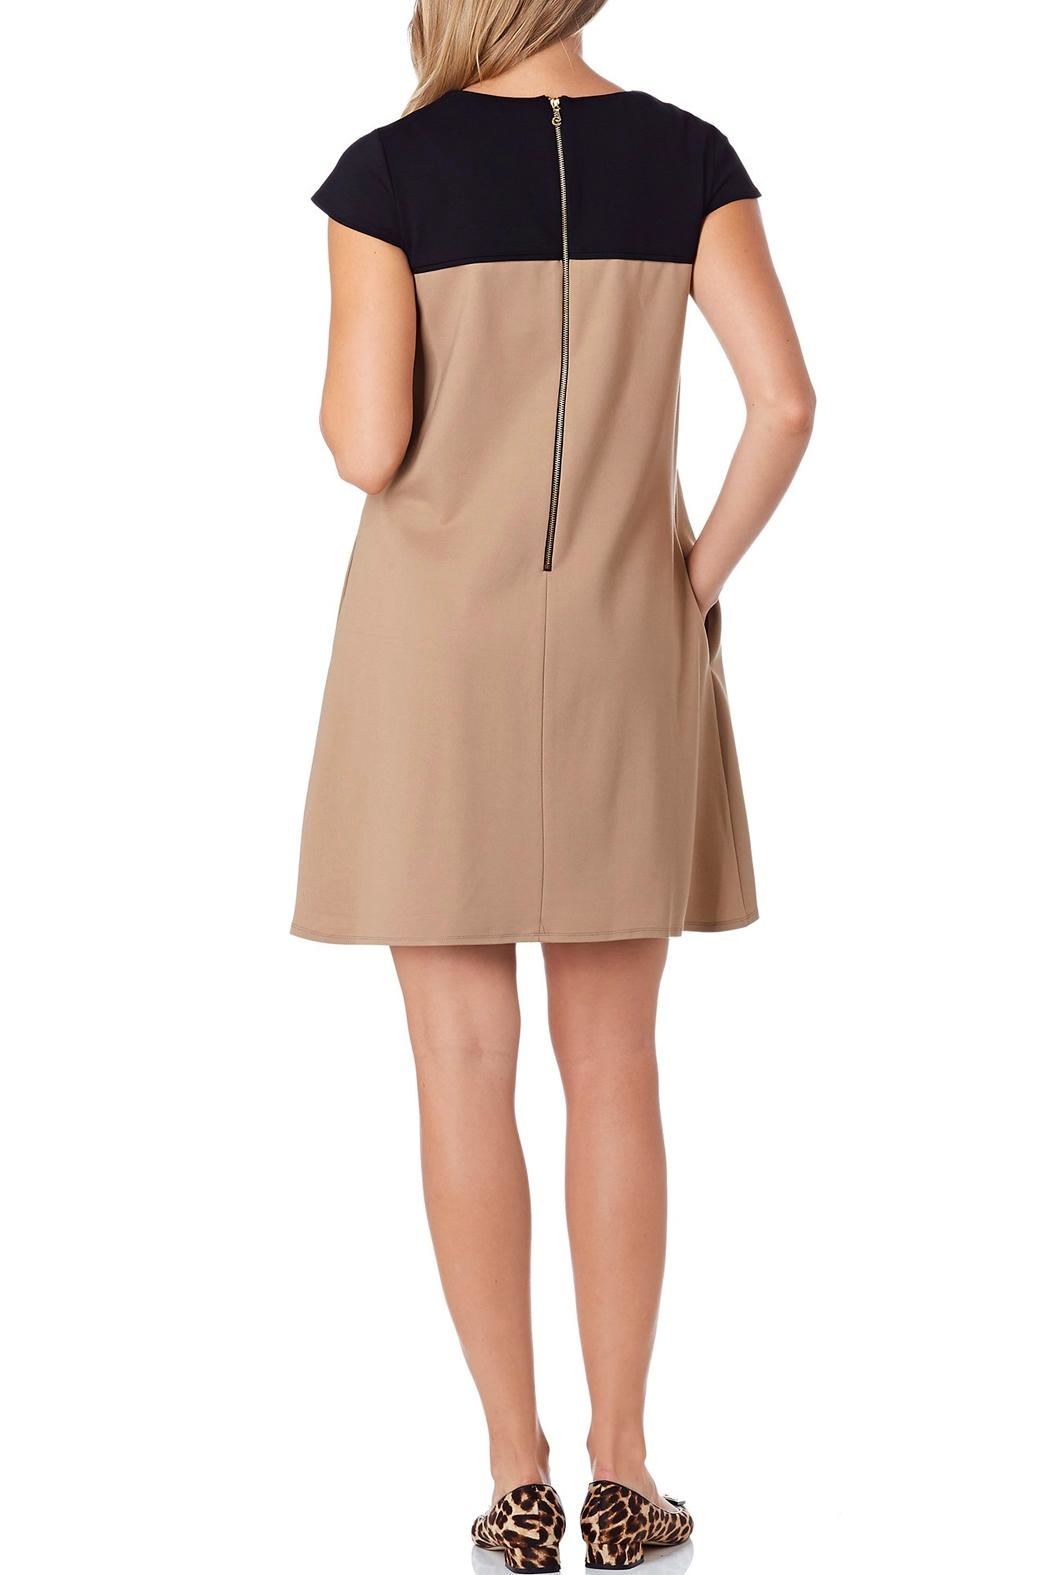 Jude Connally Polly-Ponte Swing Dress - Front Full Image